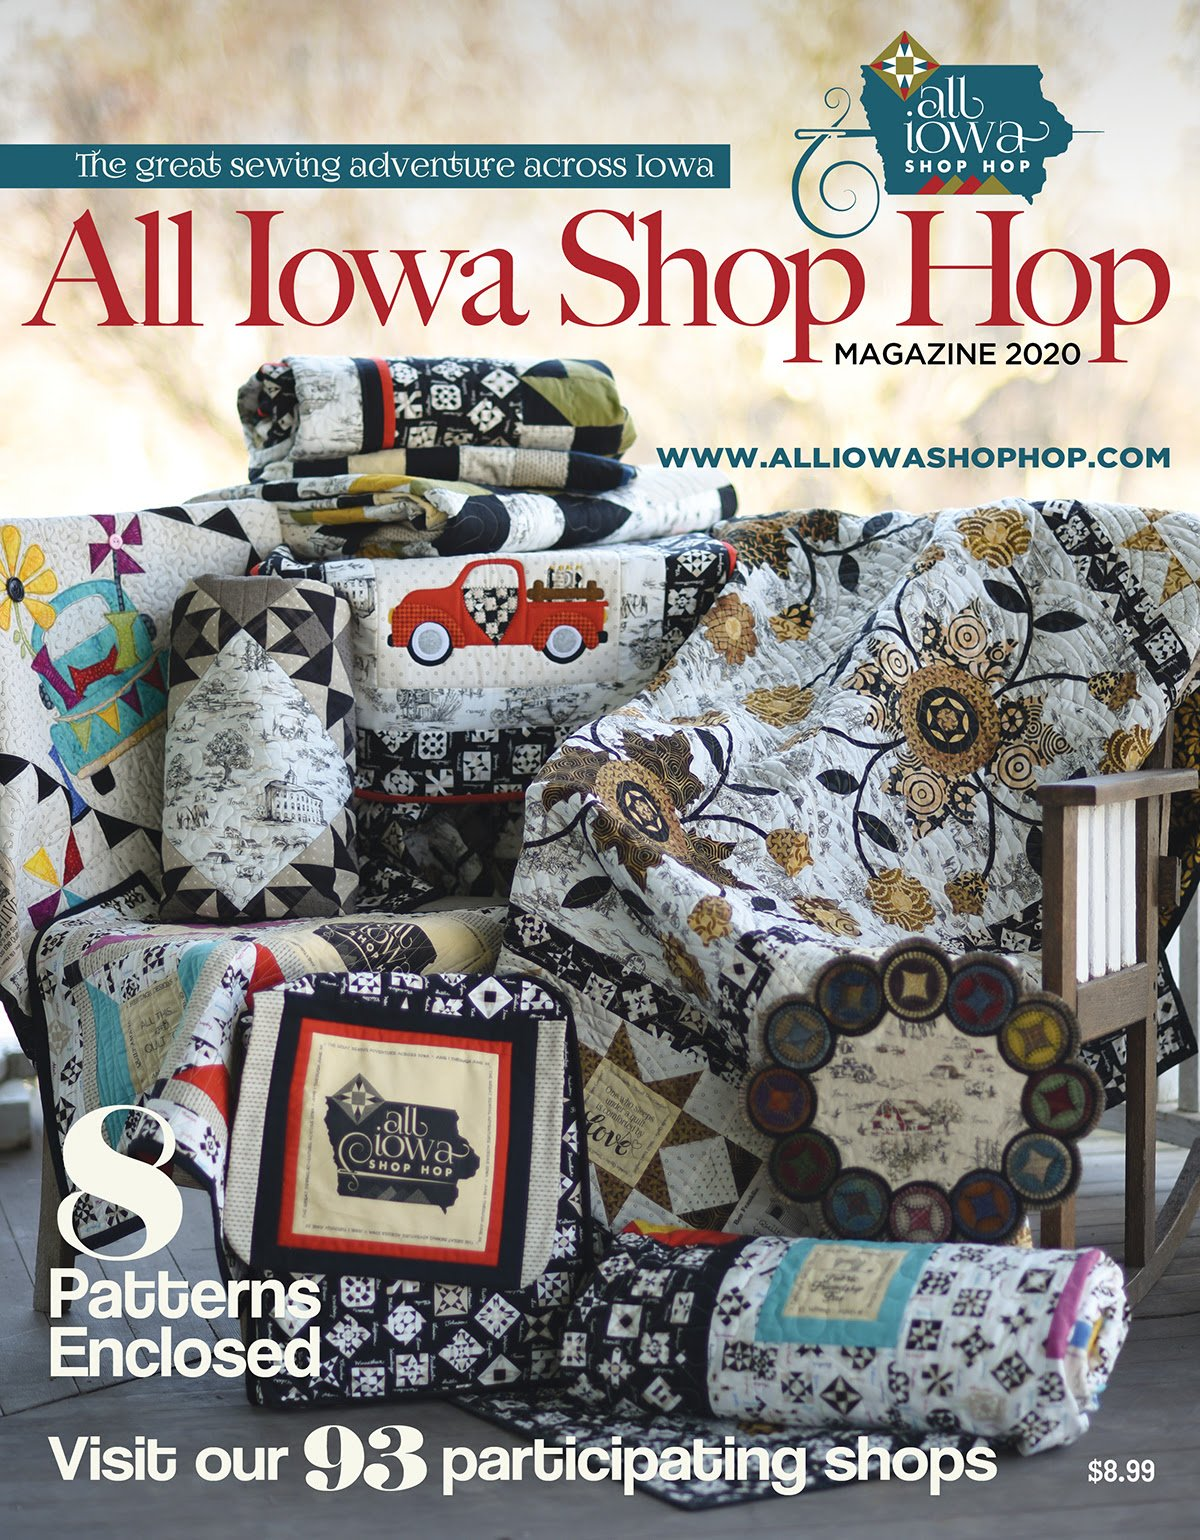 Iowa Shop Hop Magazine